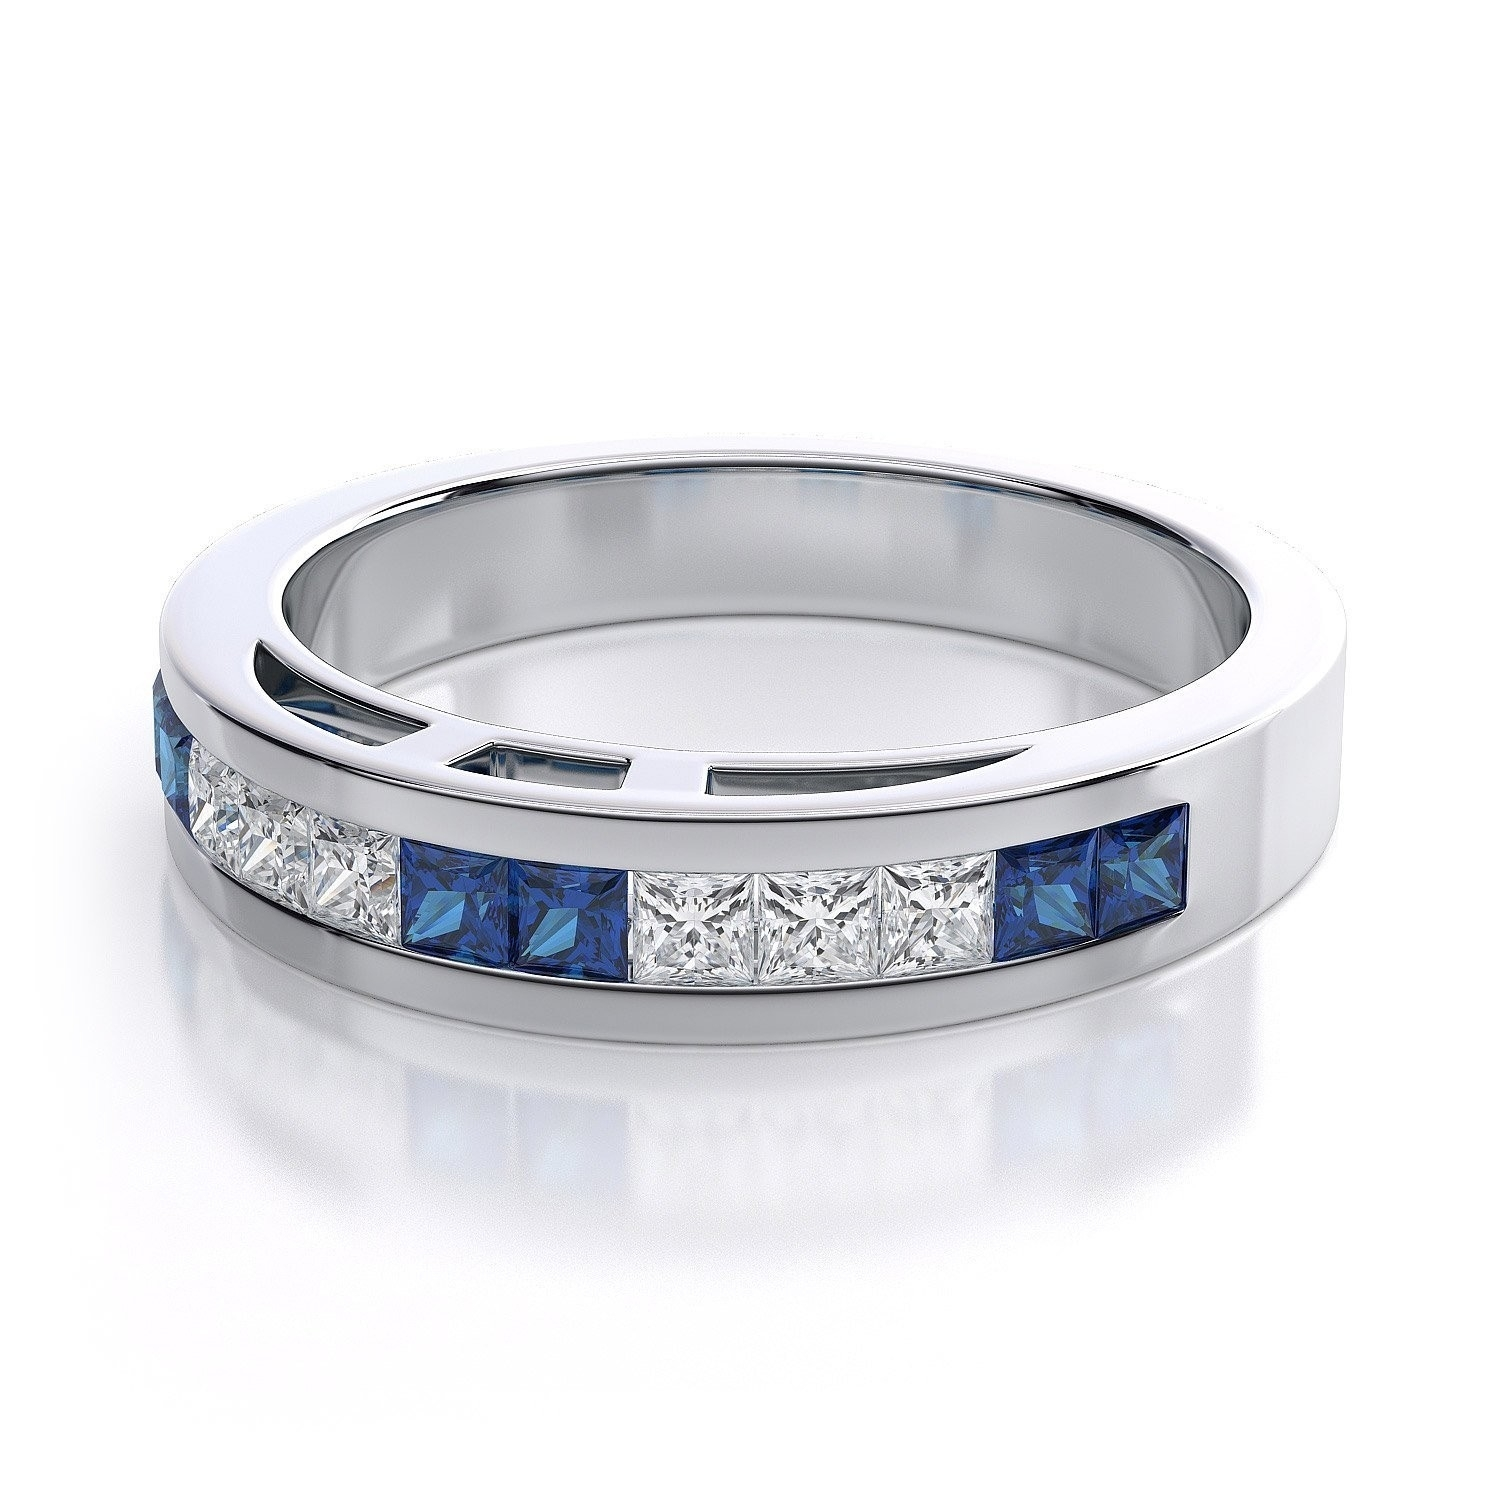 Channel Set Blue Sapphire And Diamond Princess Cut Gemstone Fashion Inside Best And Newest Princess Cut Blue Sapphire And Diamond Five Stone Rings In 14k White Gold (View 12 of 15)